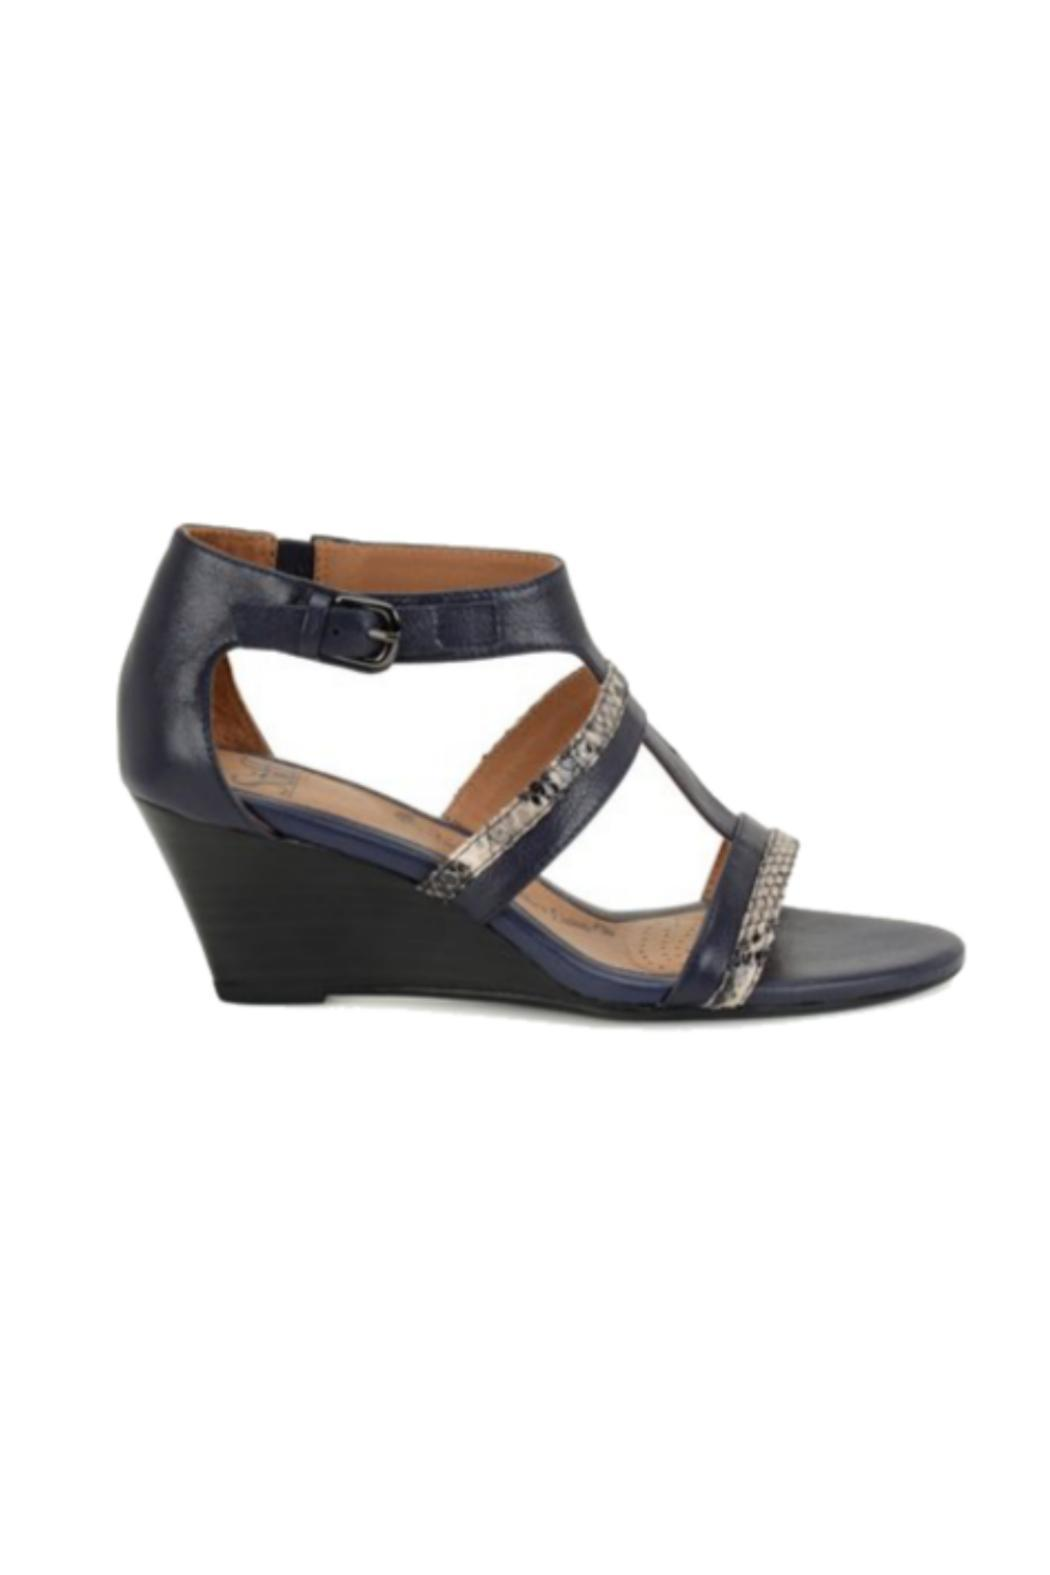 Shoes Sale: Save Up to 80% Off! Shop imriocora.ml's huge selection of Shoes - Over 31, styles available. FREE Shipping & Exchanges, and a % price guarantee!